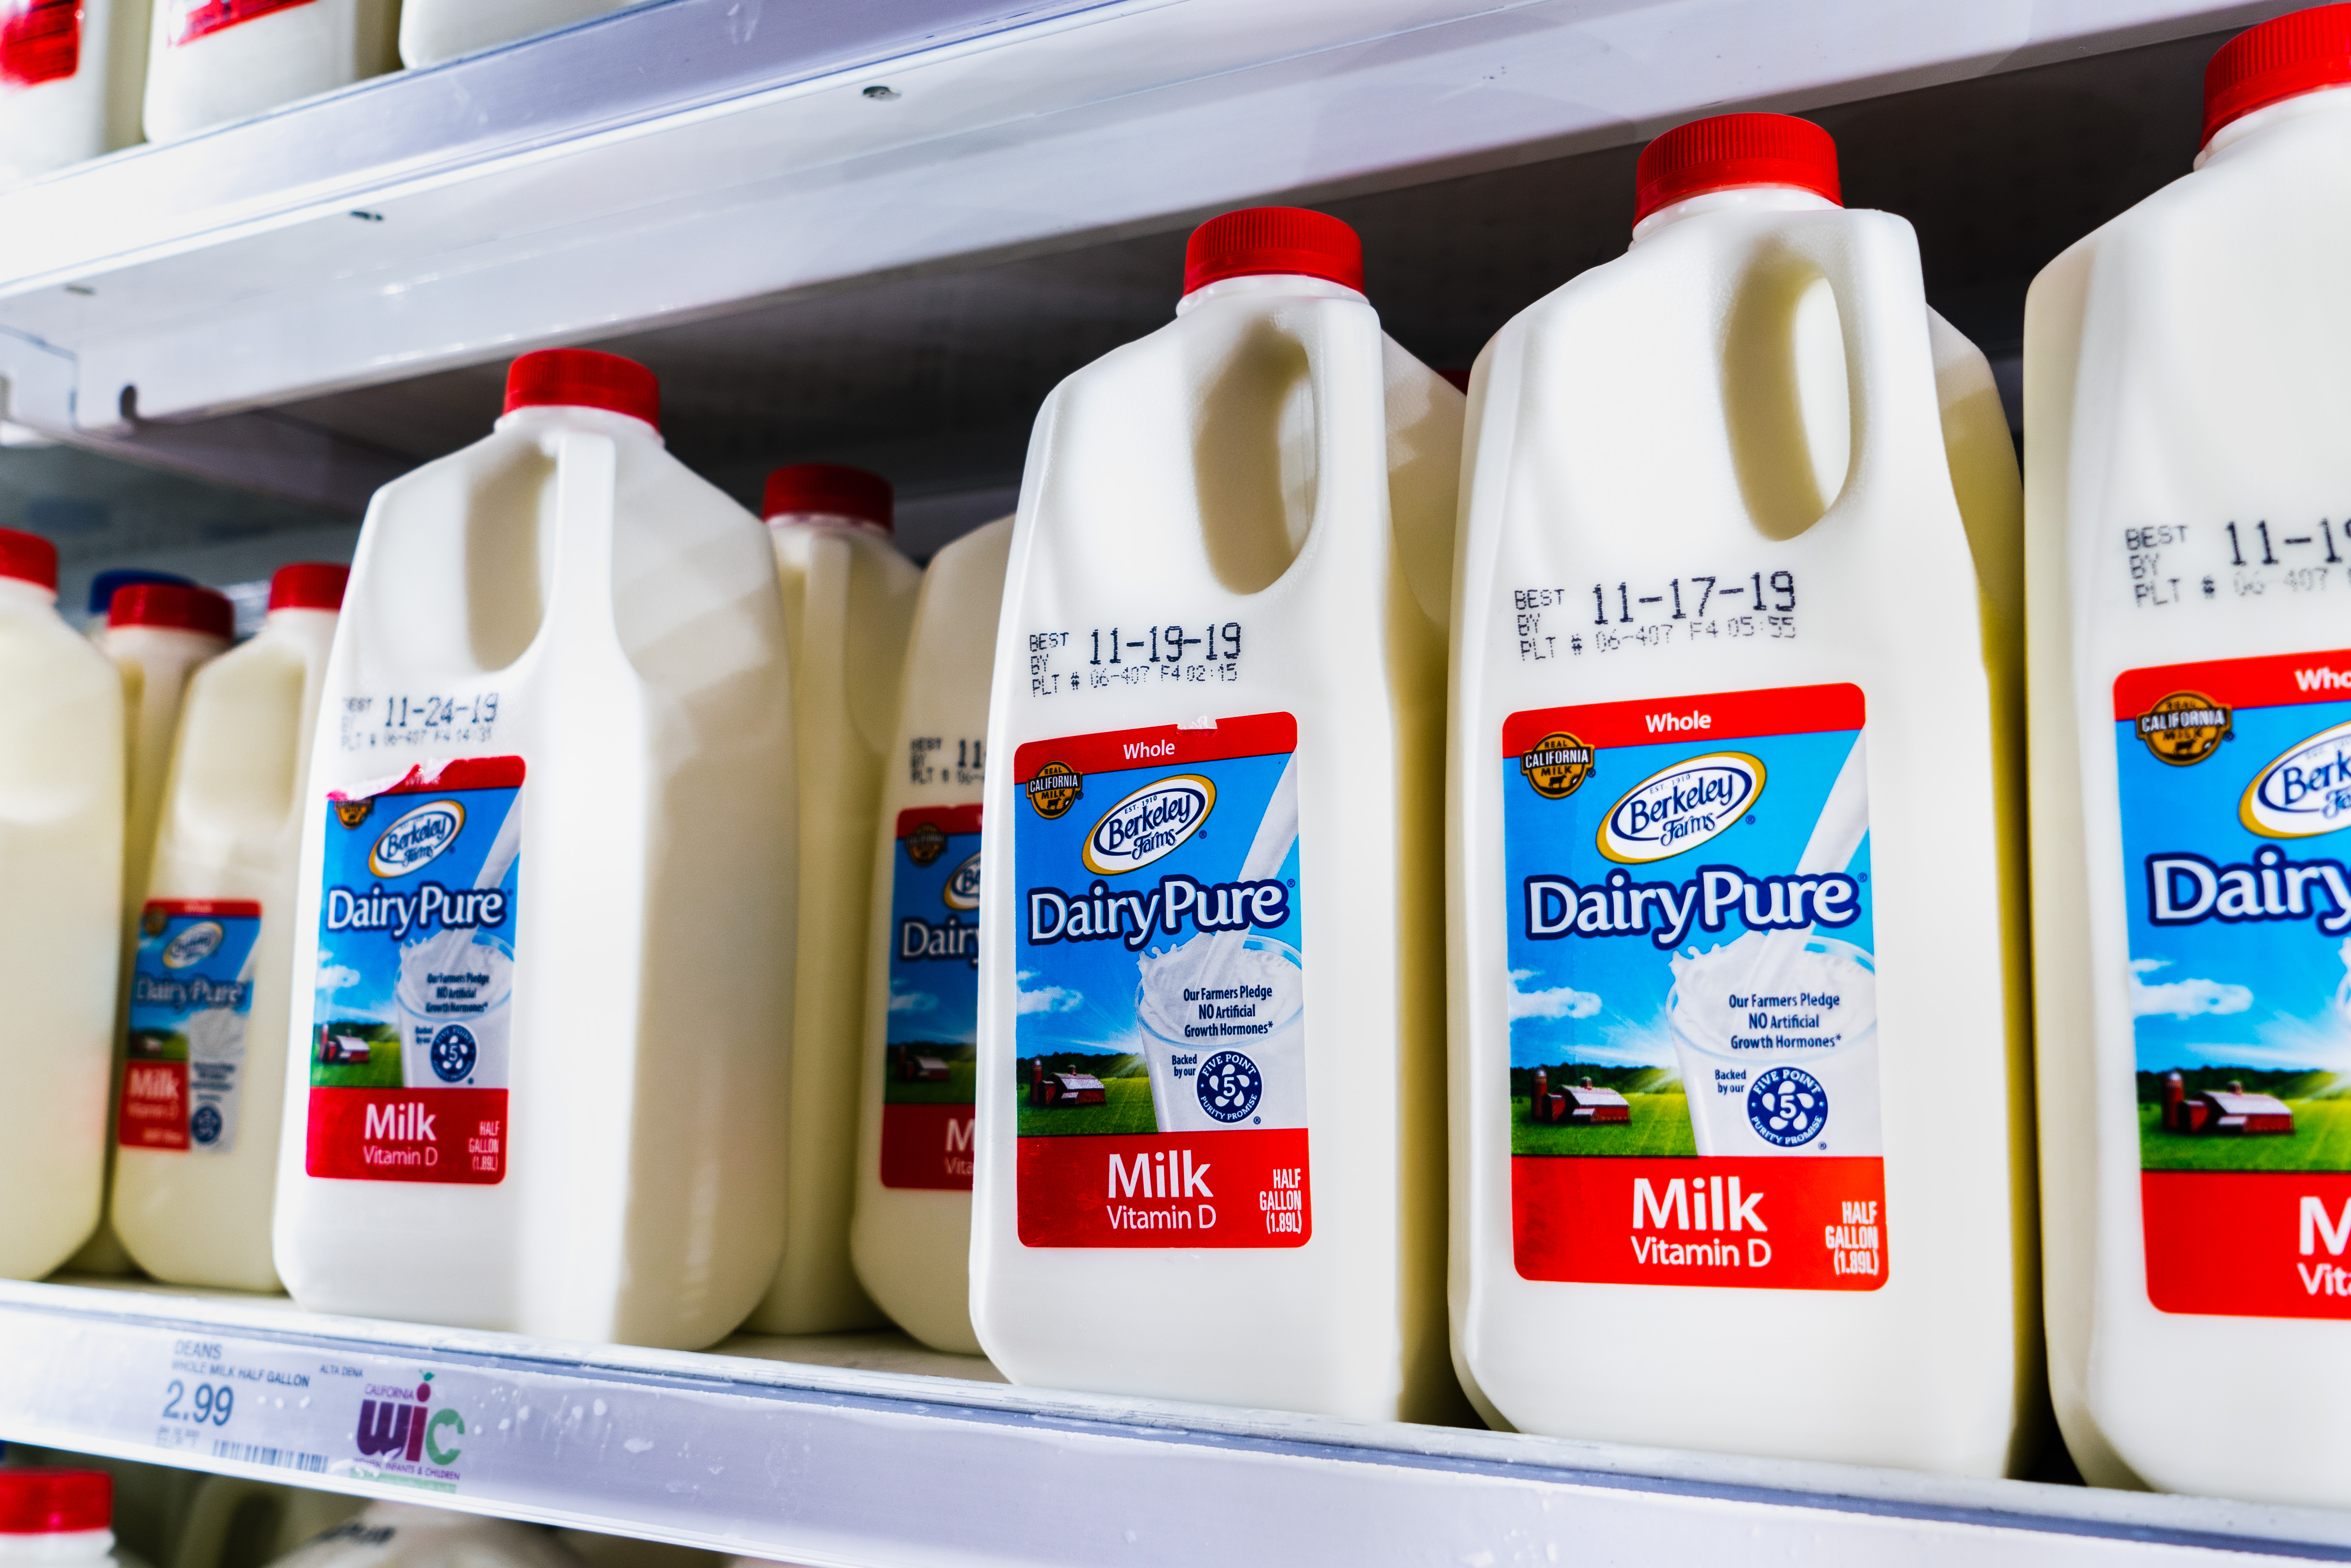 A grocery store aisle displaying half-gallon jugs of DairyPure milk.